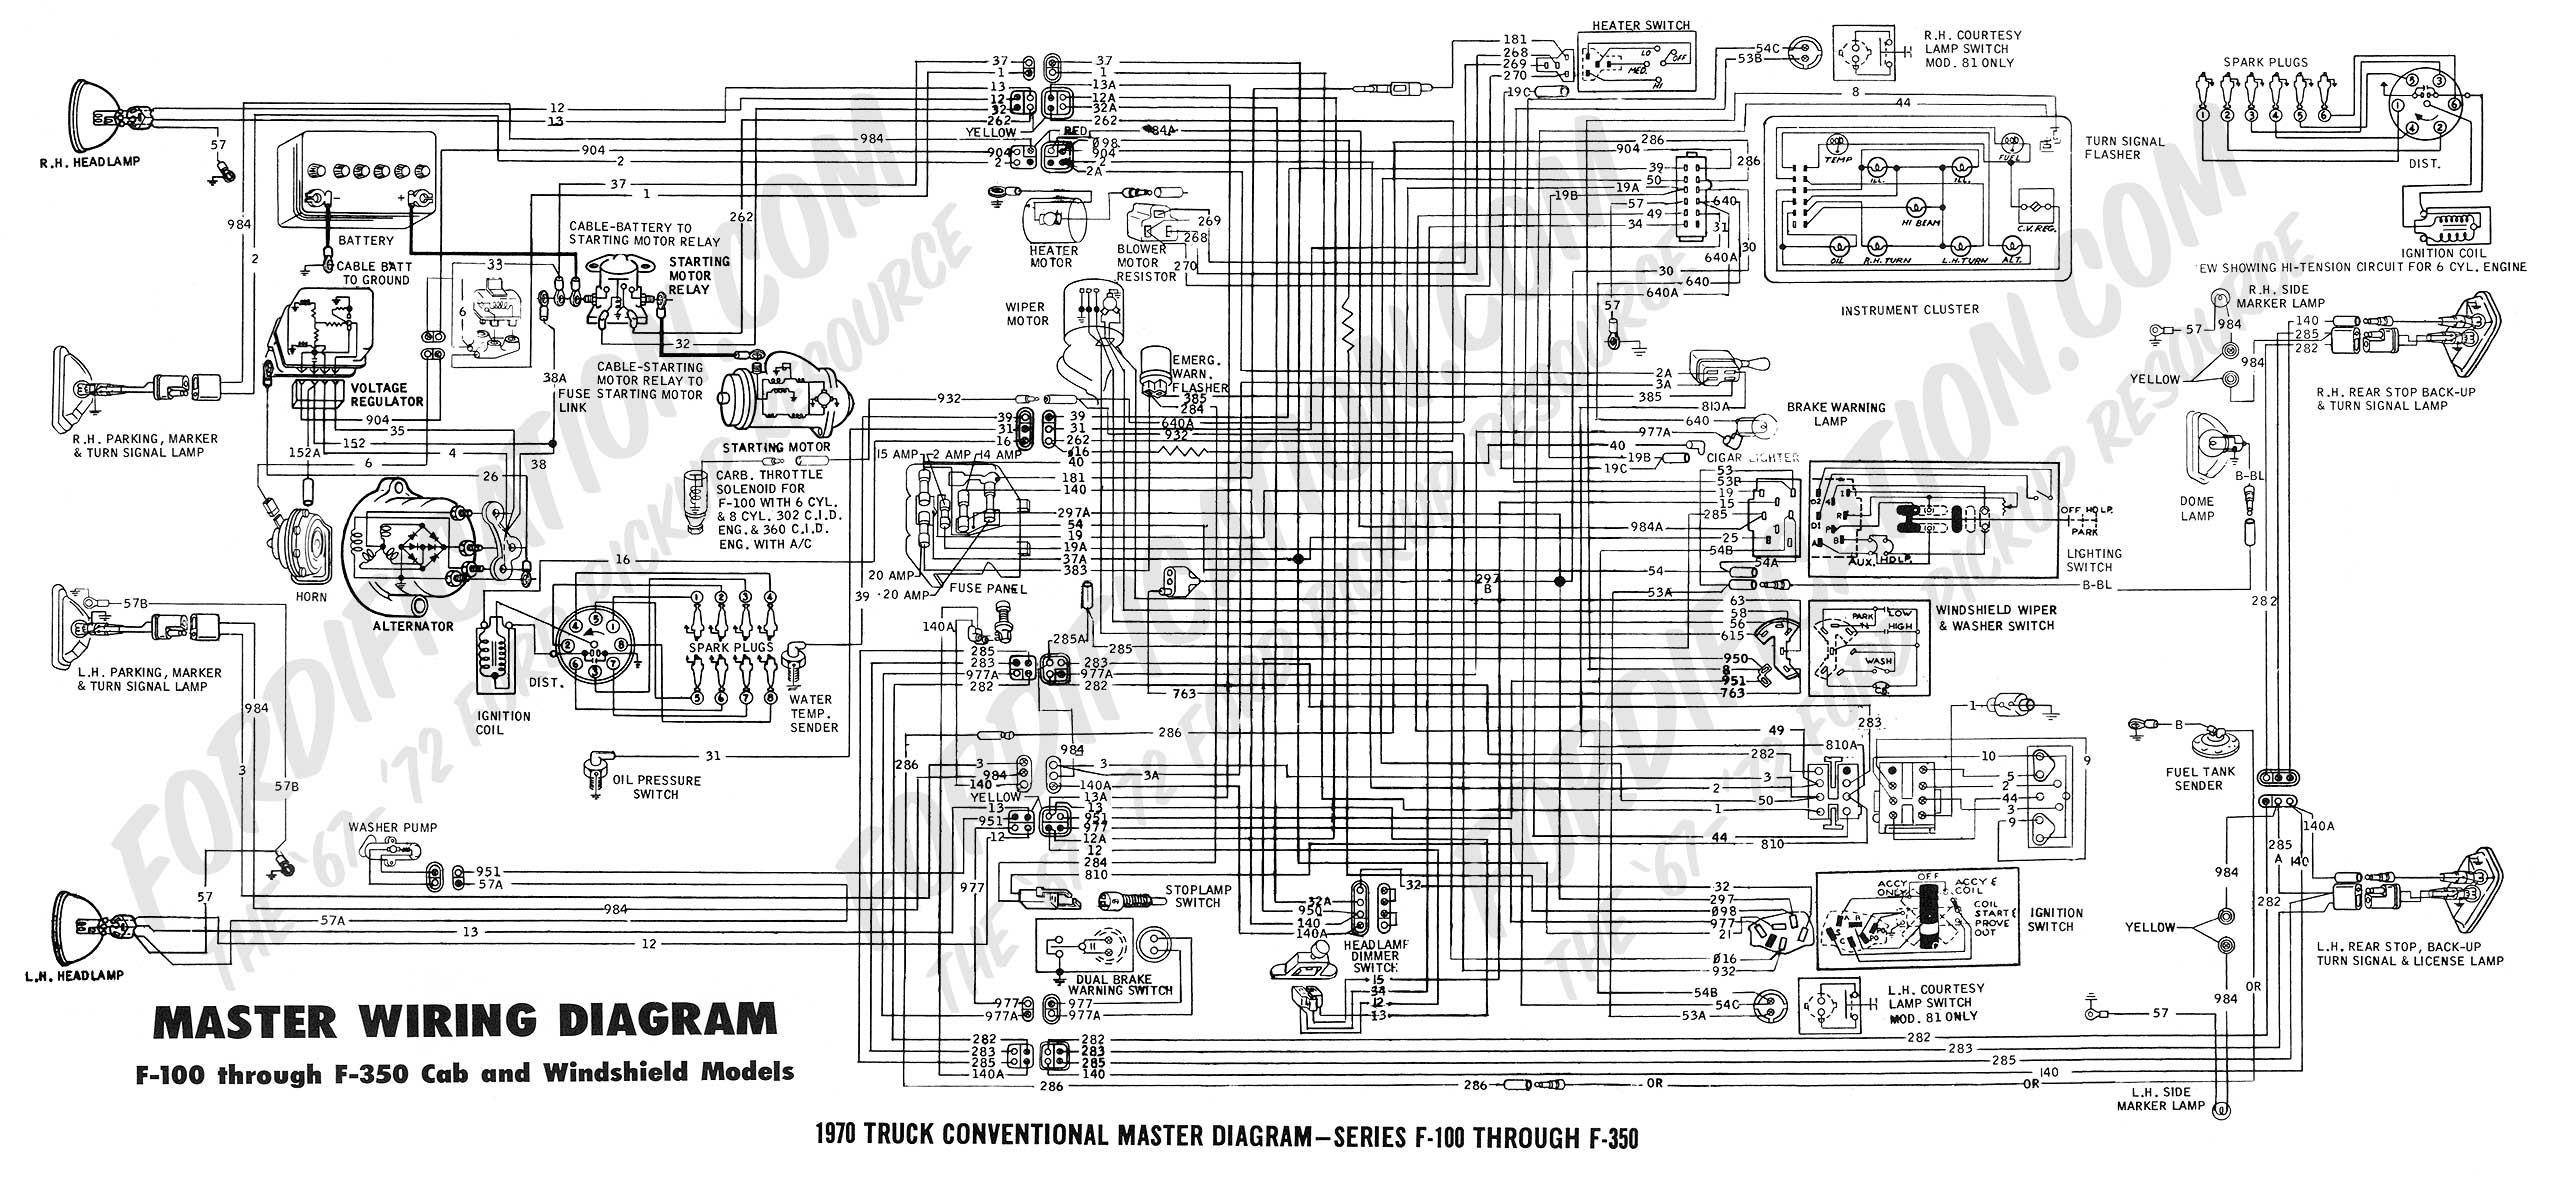 ford fairmont wiring diagram electrical wiring diagrams rh cytrus co 1994 F150  Engine Wiring Diagram 1978 Ford F-150 Wiring Diagram